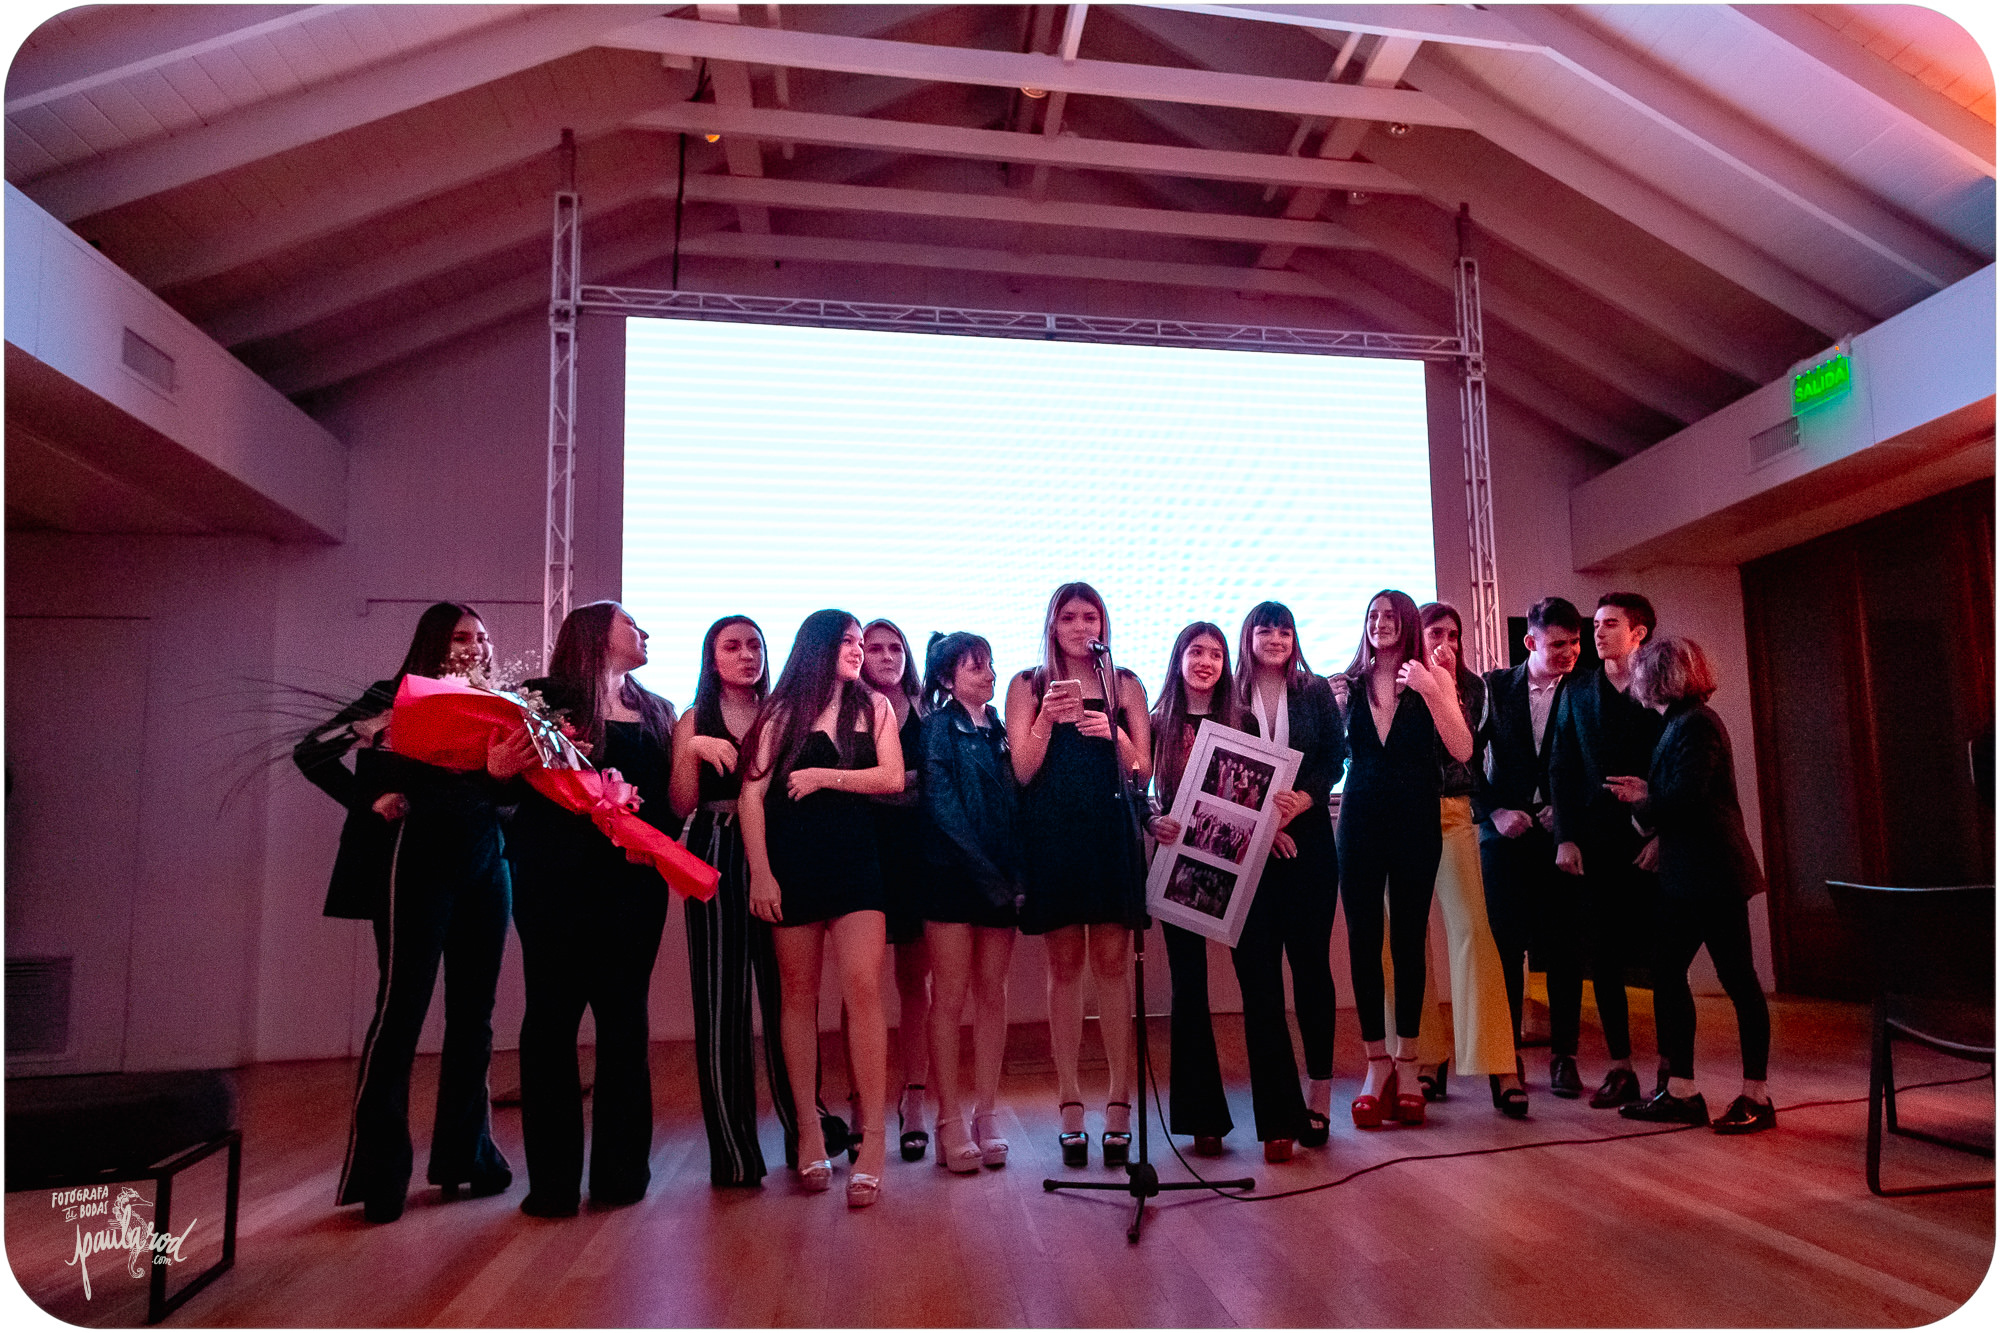 fotografia_documental_para_quinces_en_castelar (1).jpg